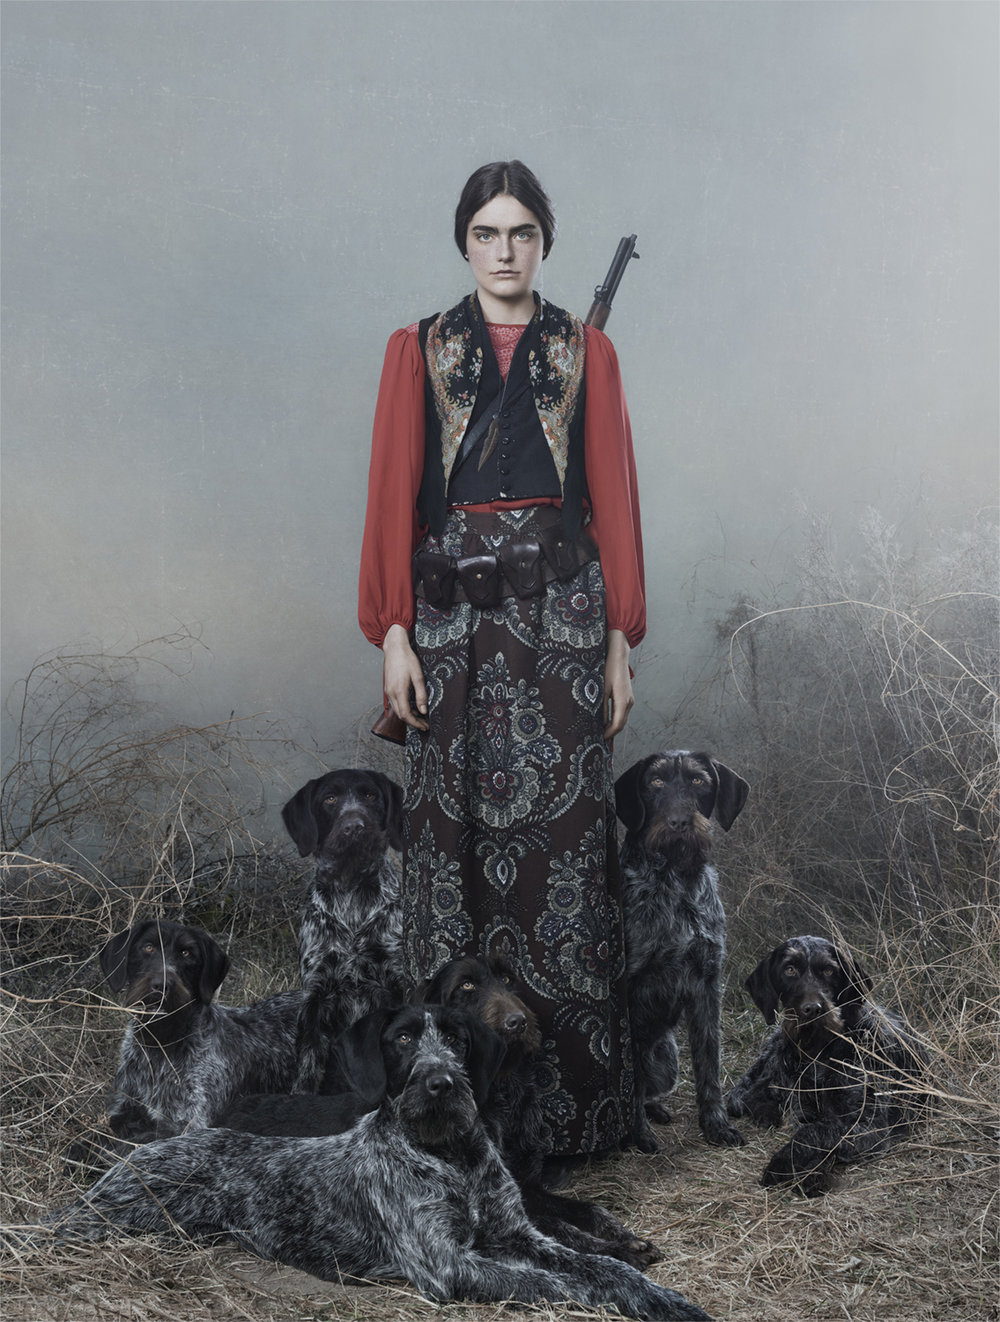 Hounds from the series DiANAS, Frieke Janssens